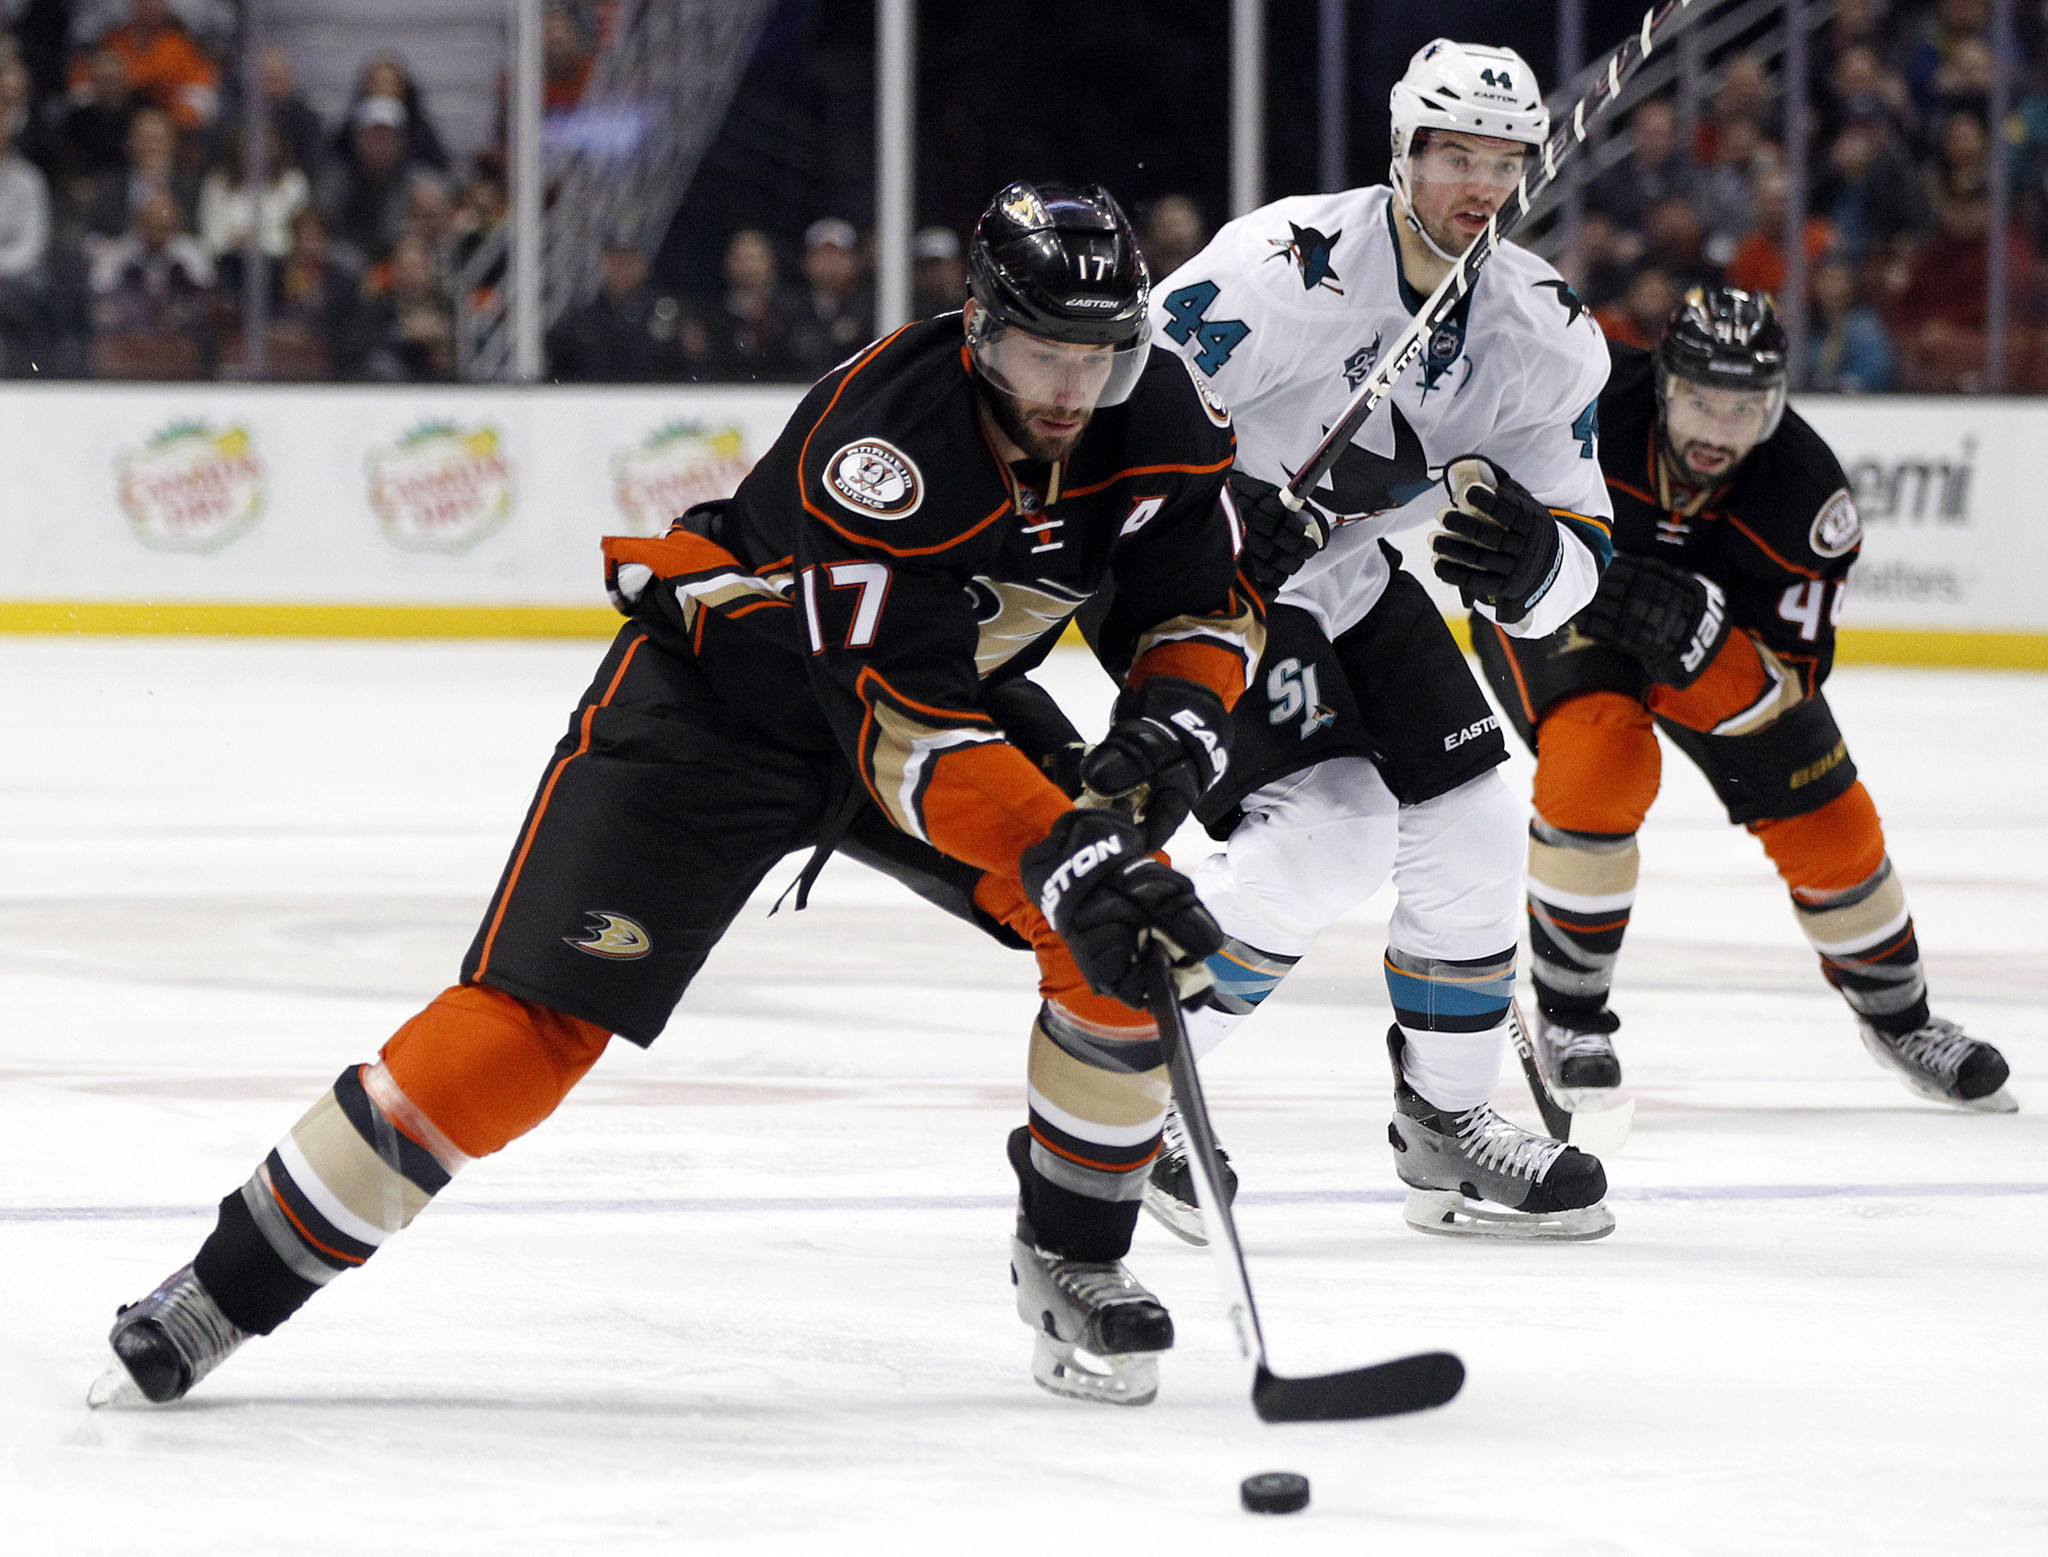 La-sp-ducks-sharks-20160203